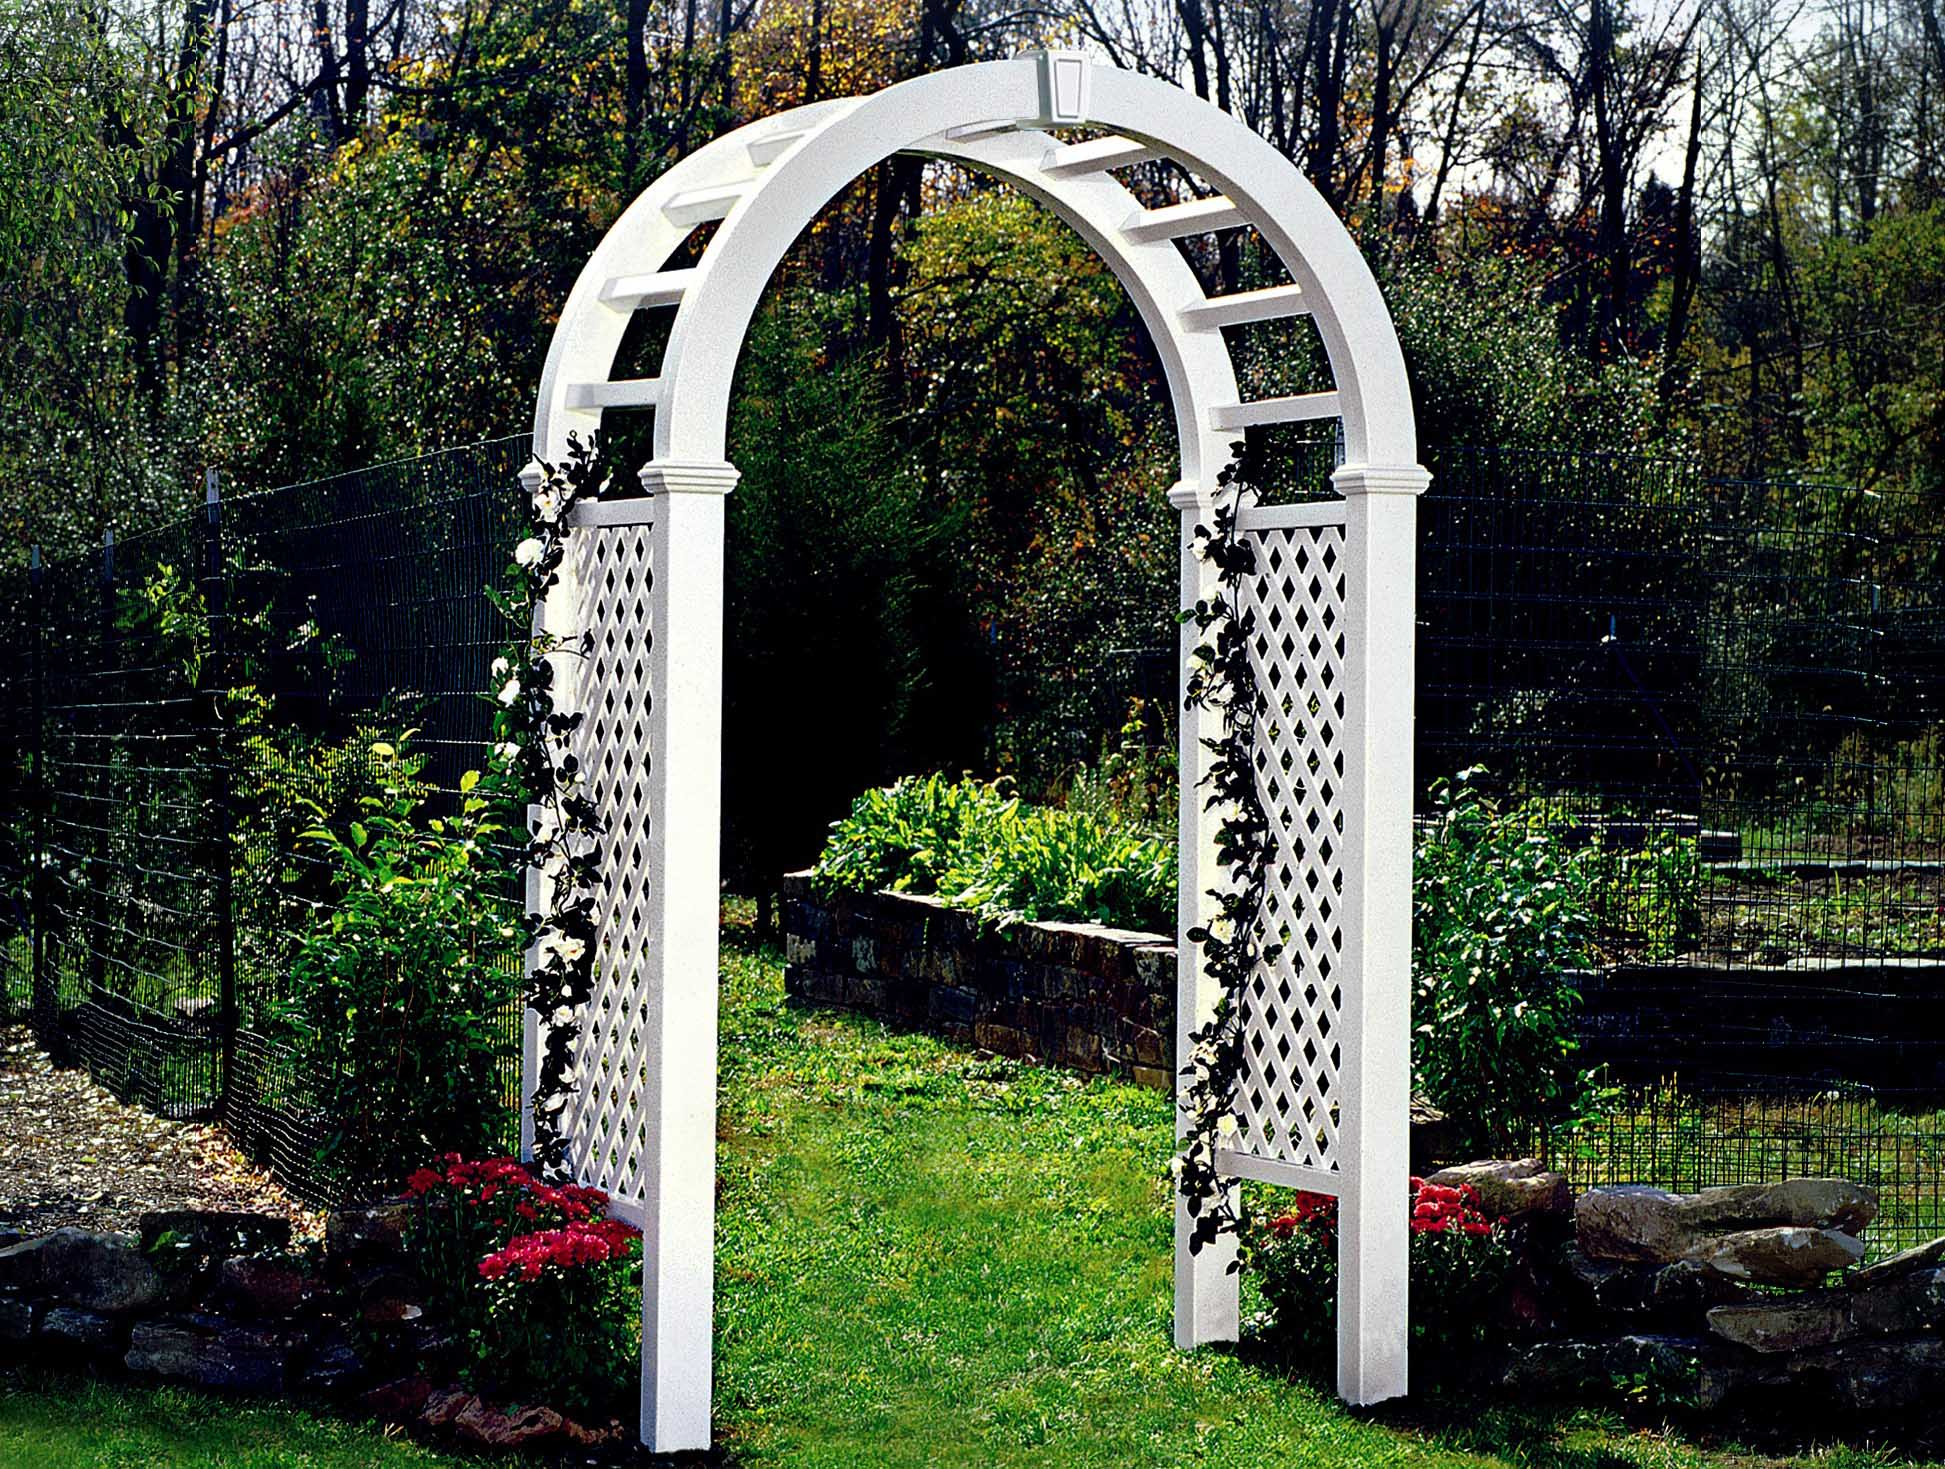 An arbor can be a tasteful focal point of a yard or outdoor space